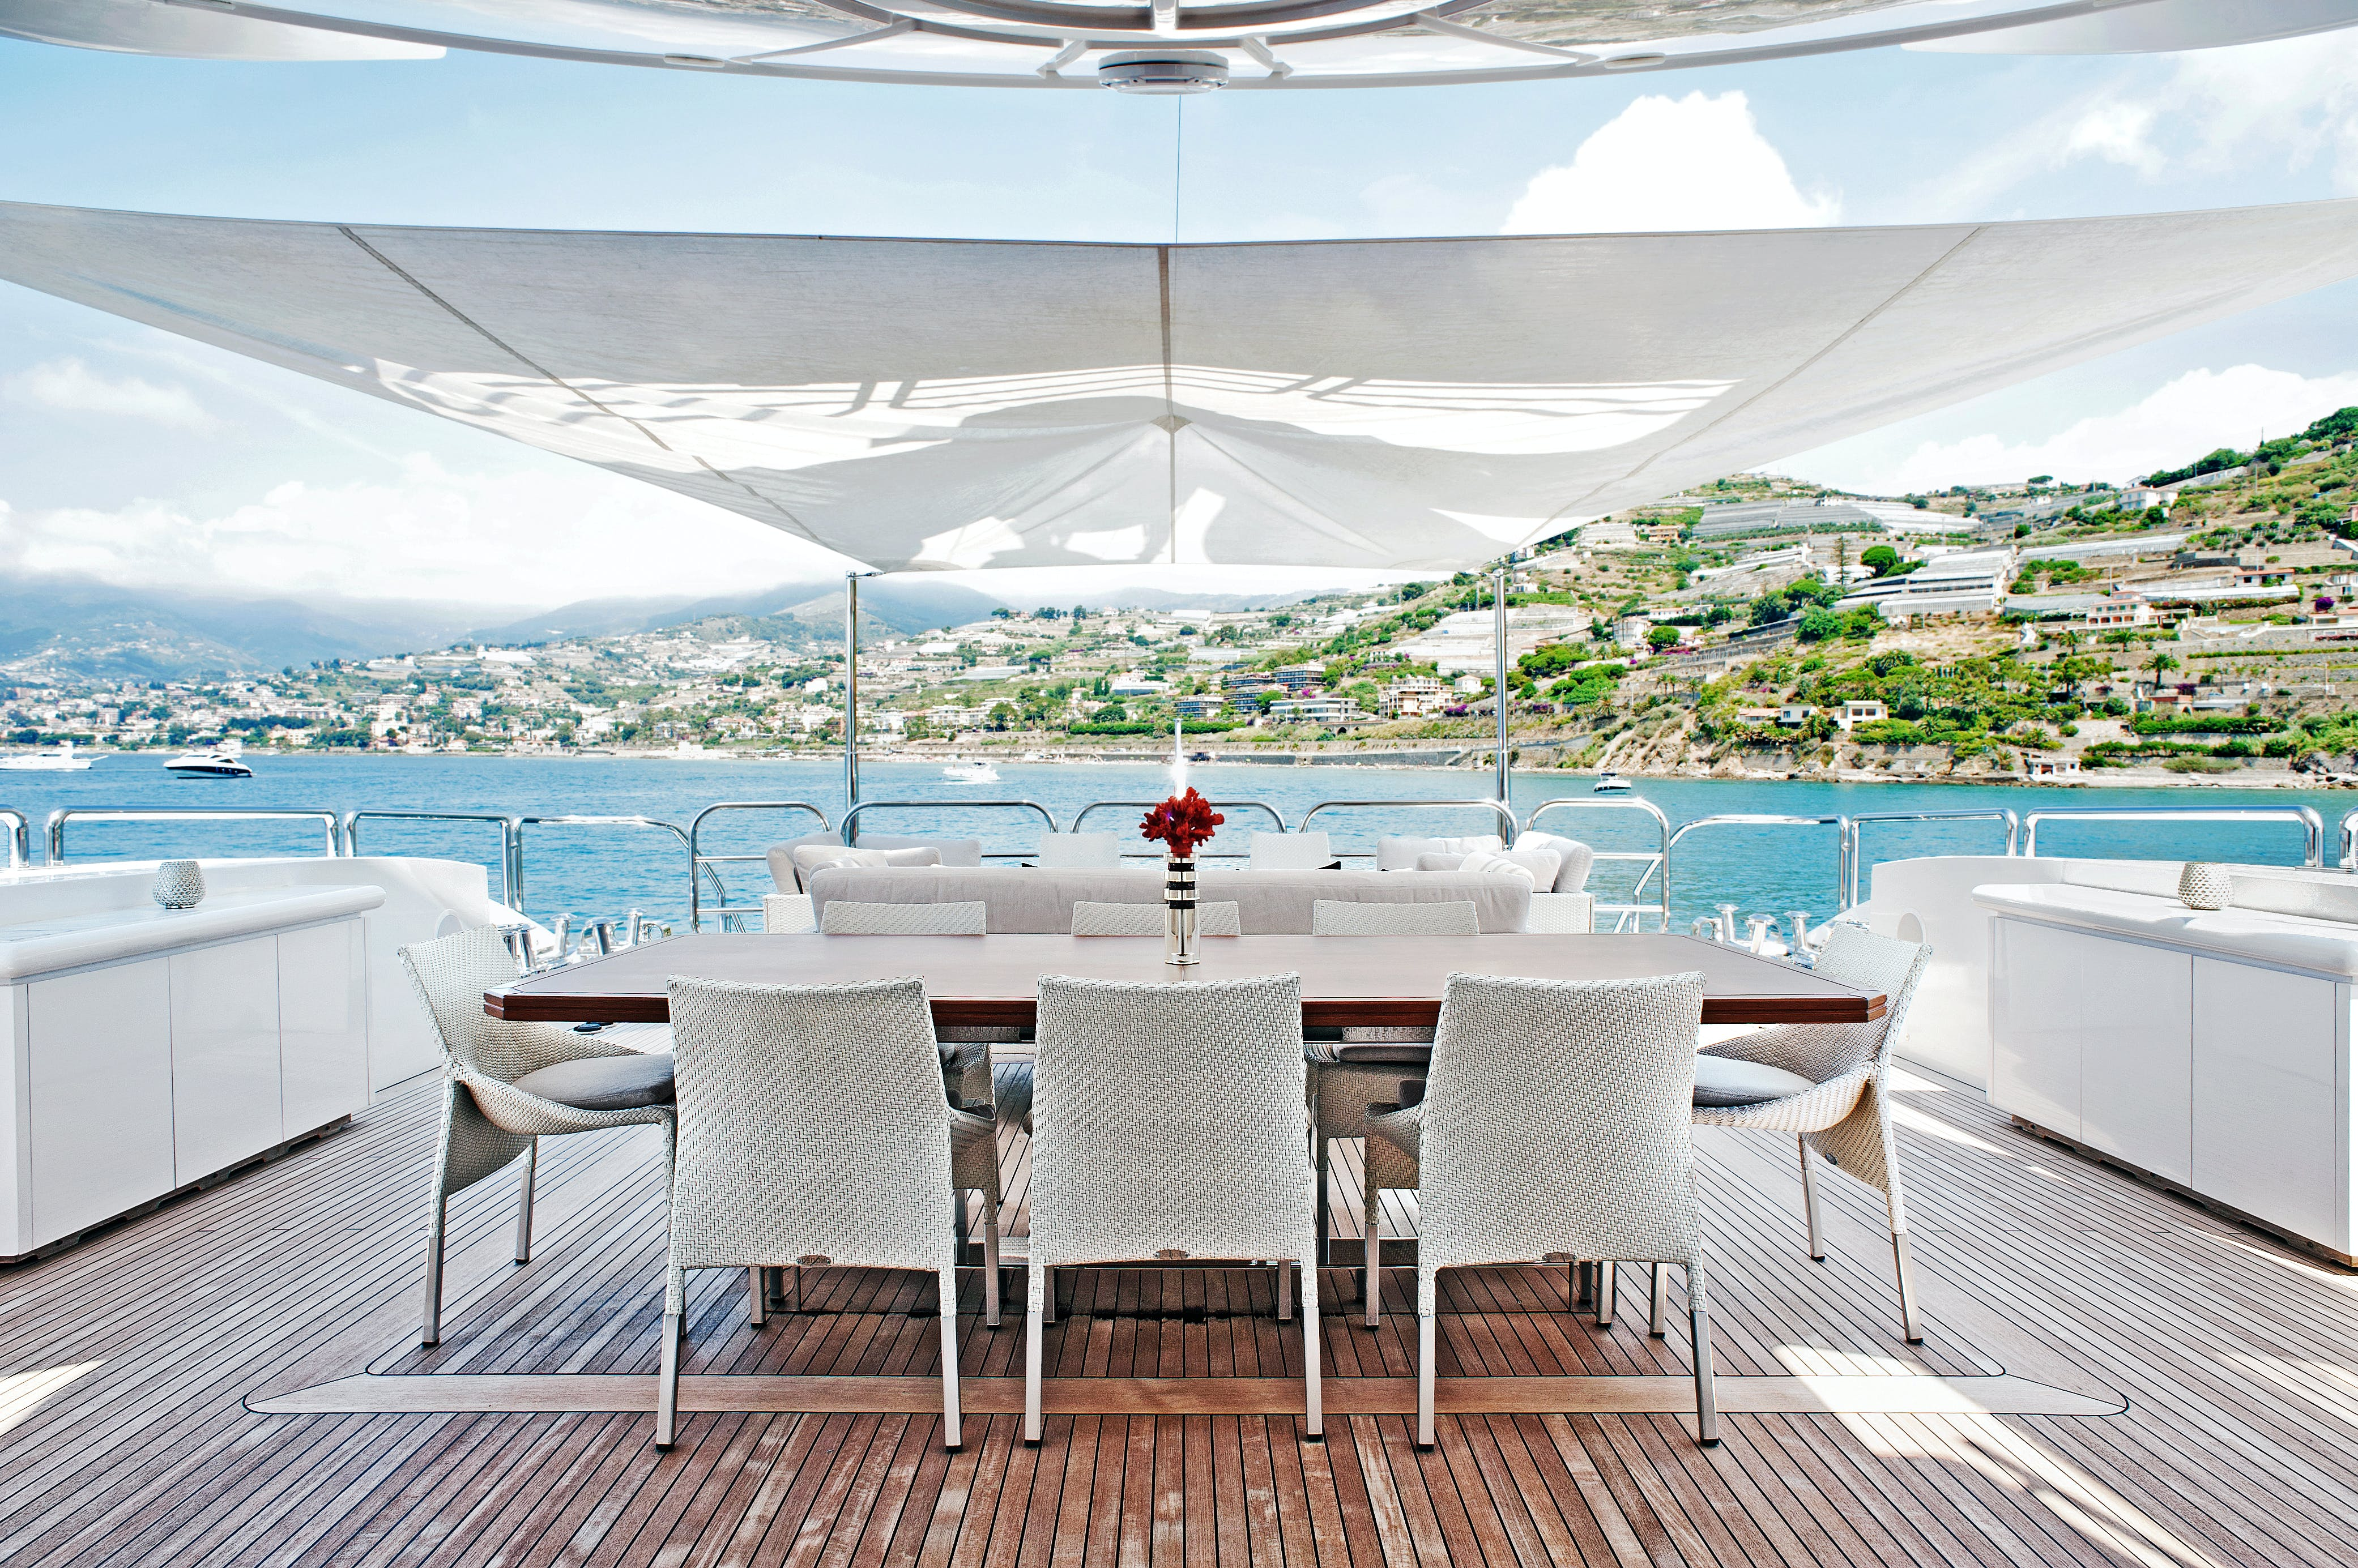 Seasonal Rates for TUTTO LE MARRANE Private Luxury Yacht For Charter